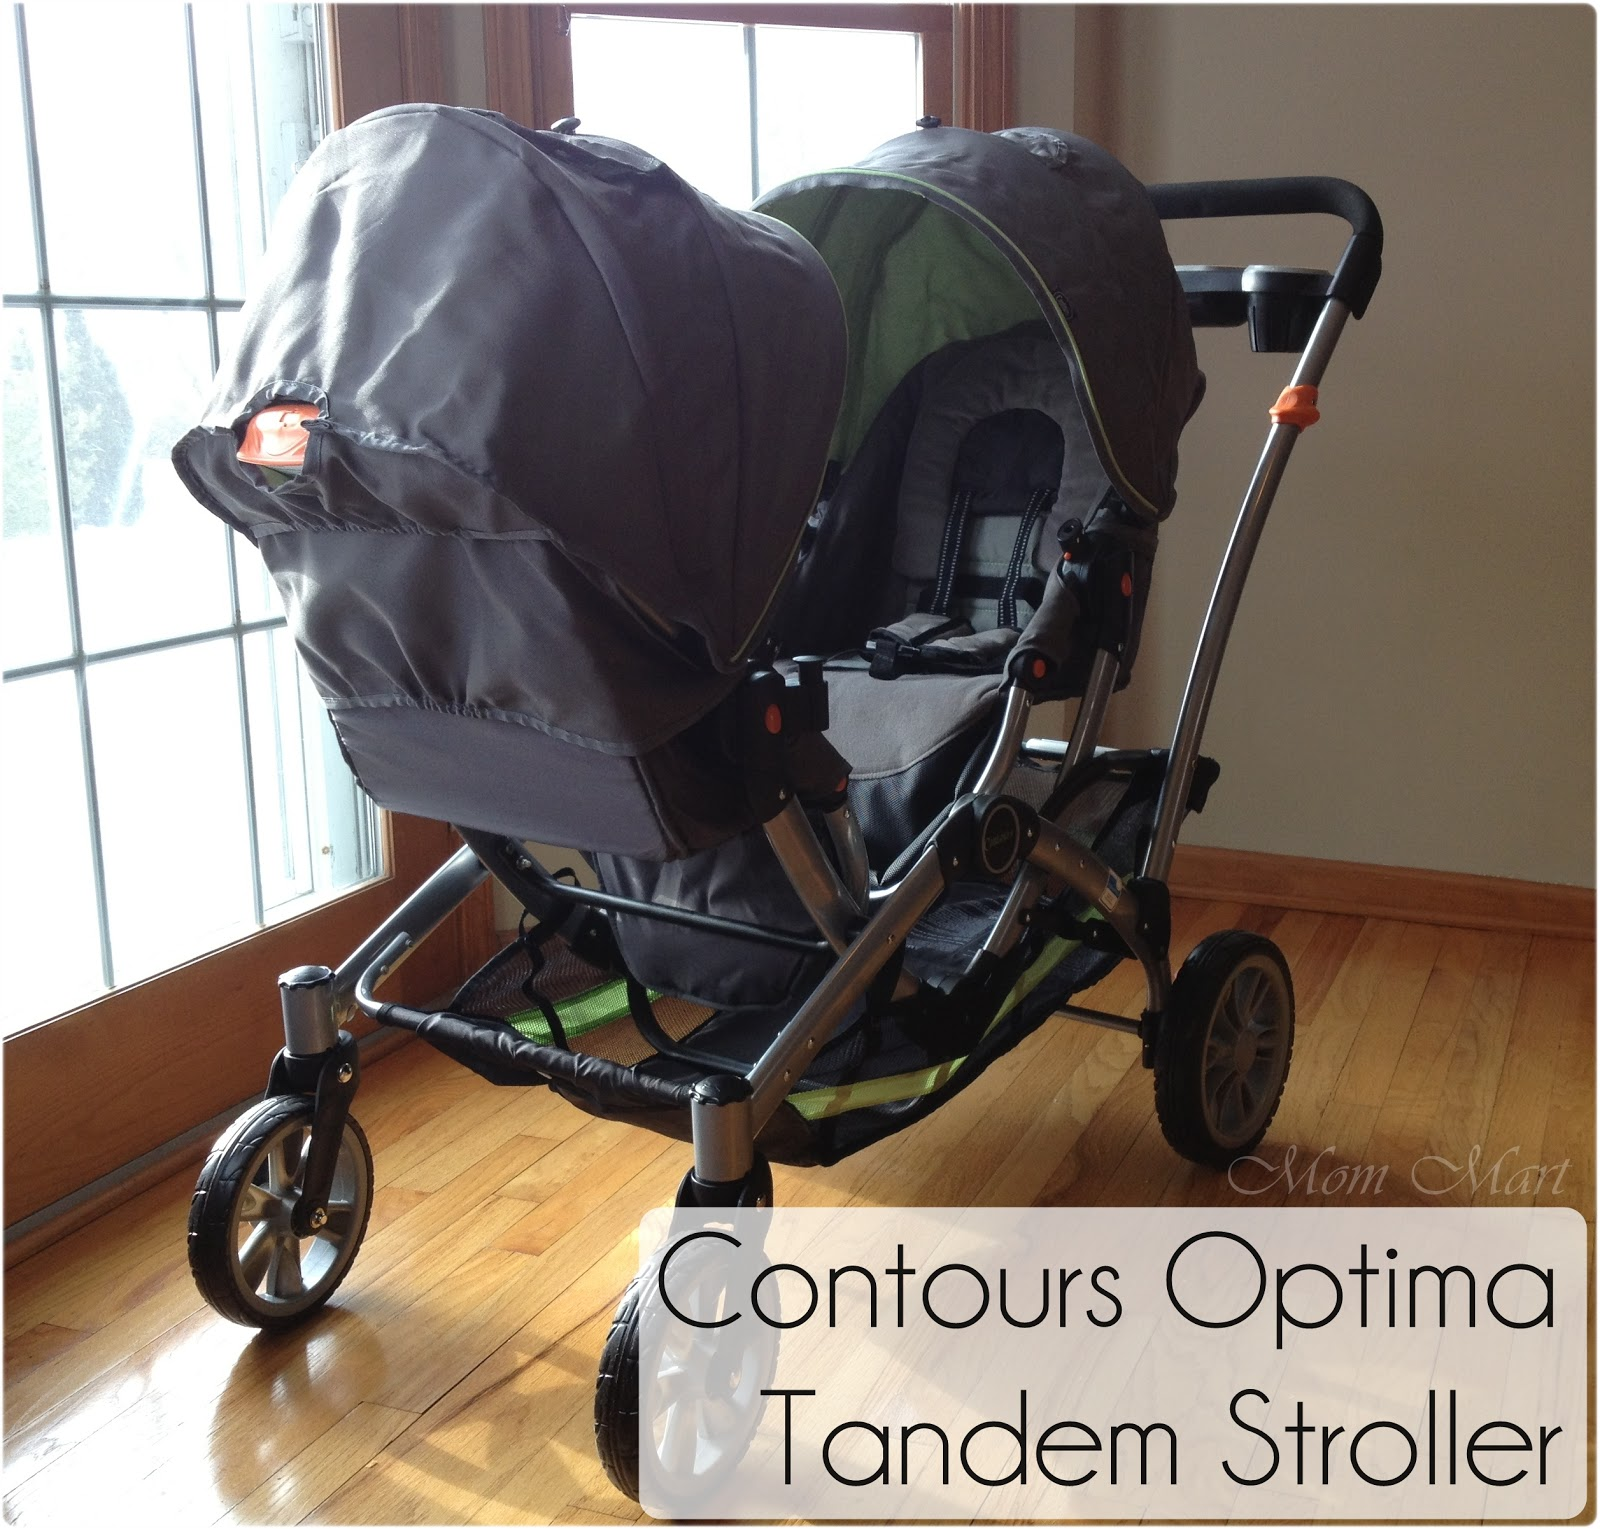 Mom Mart: Product Review: Contours Optima Tandem Double Stroller